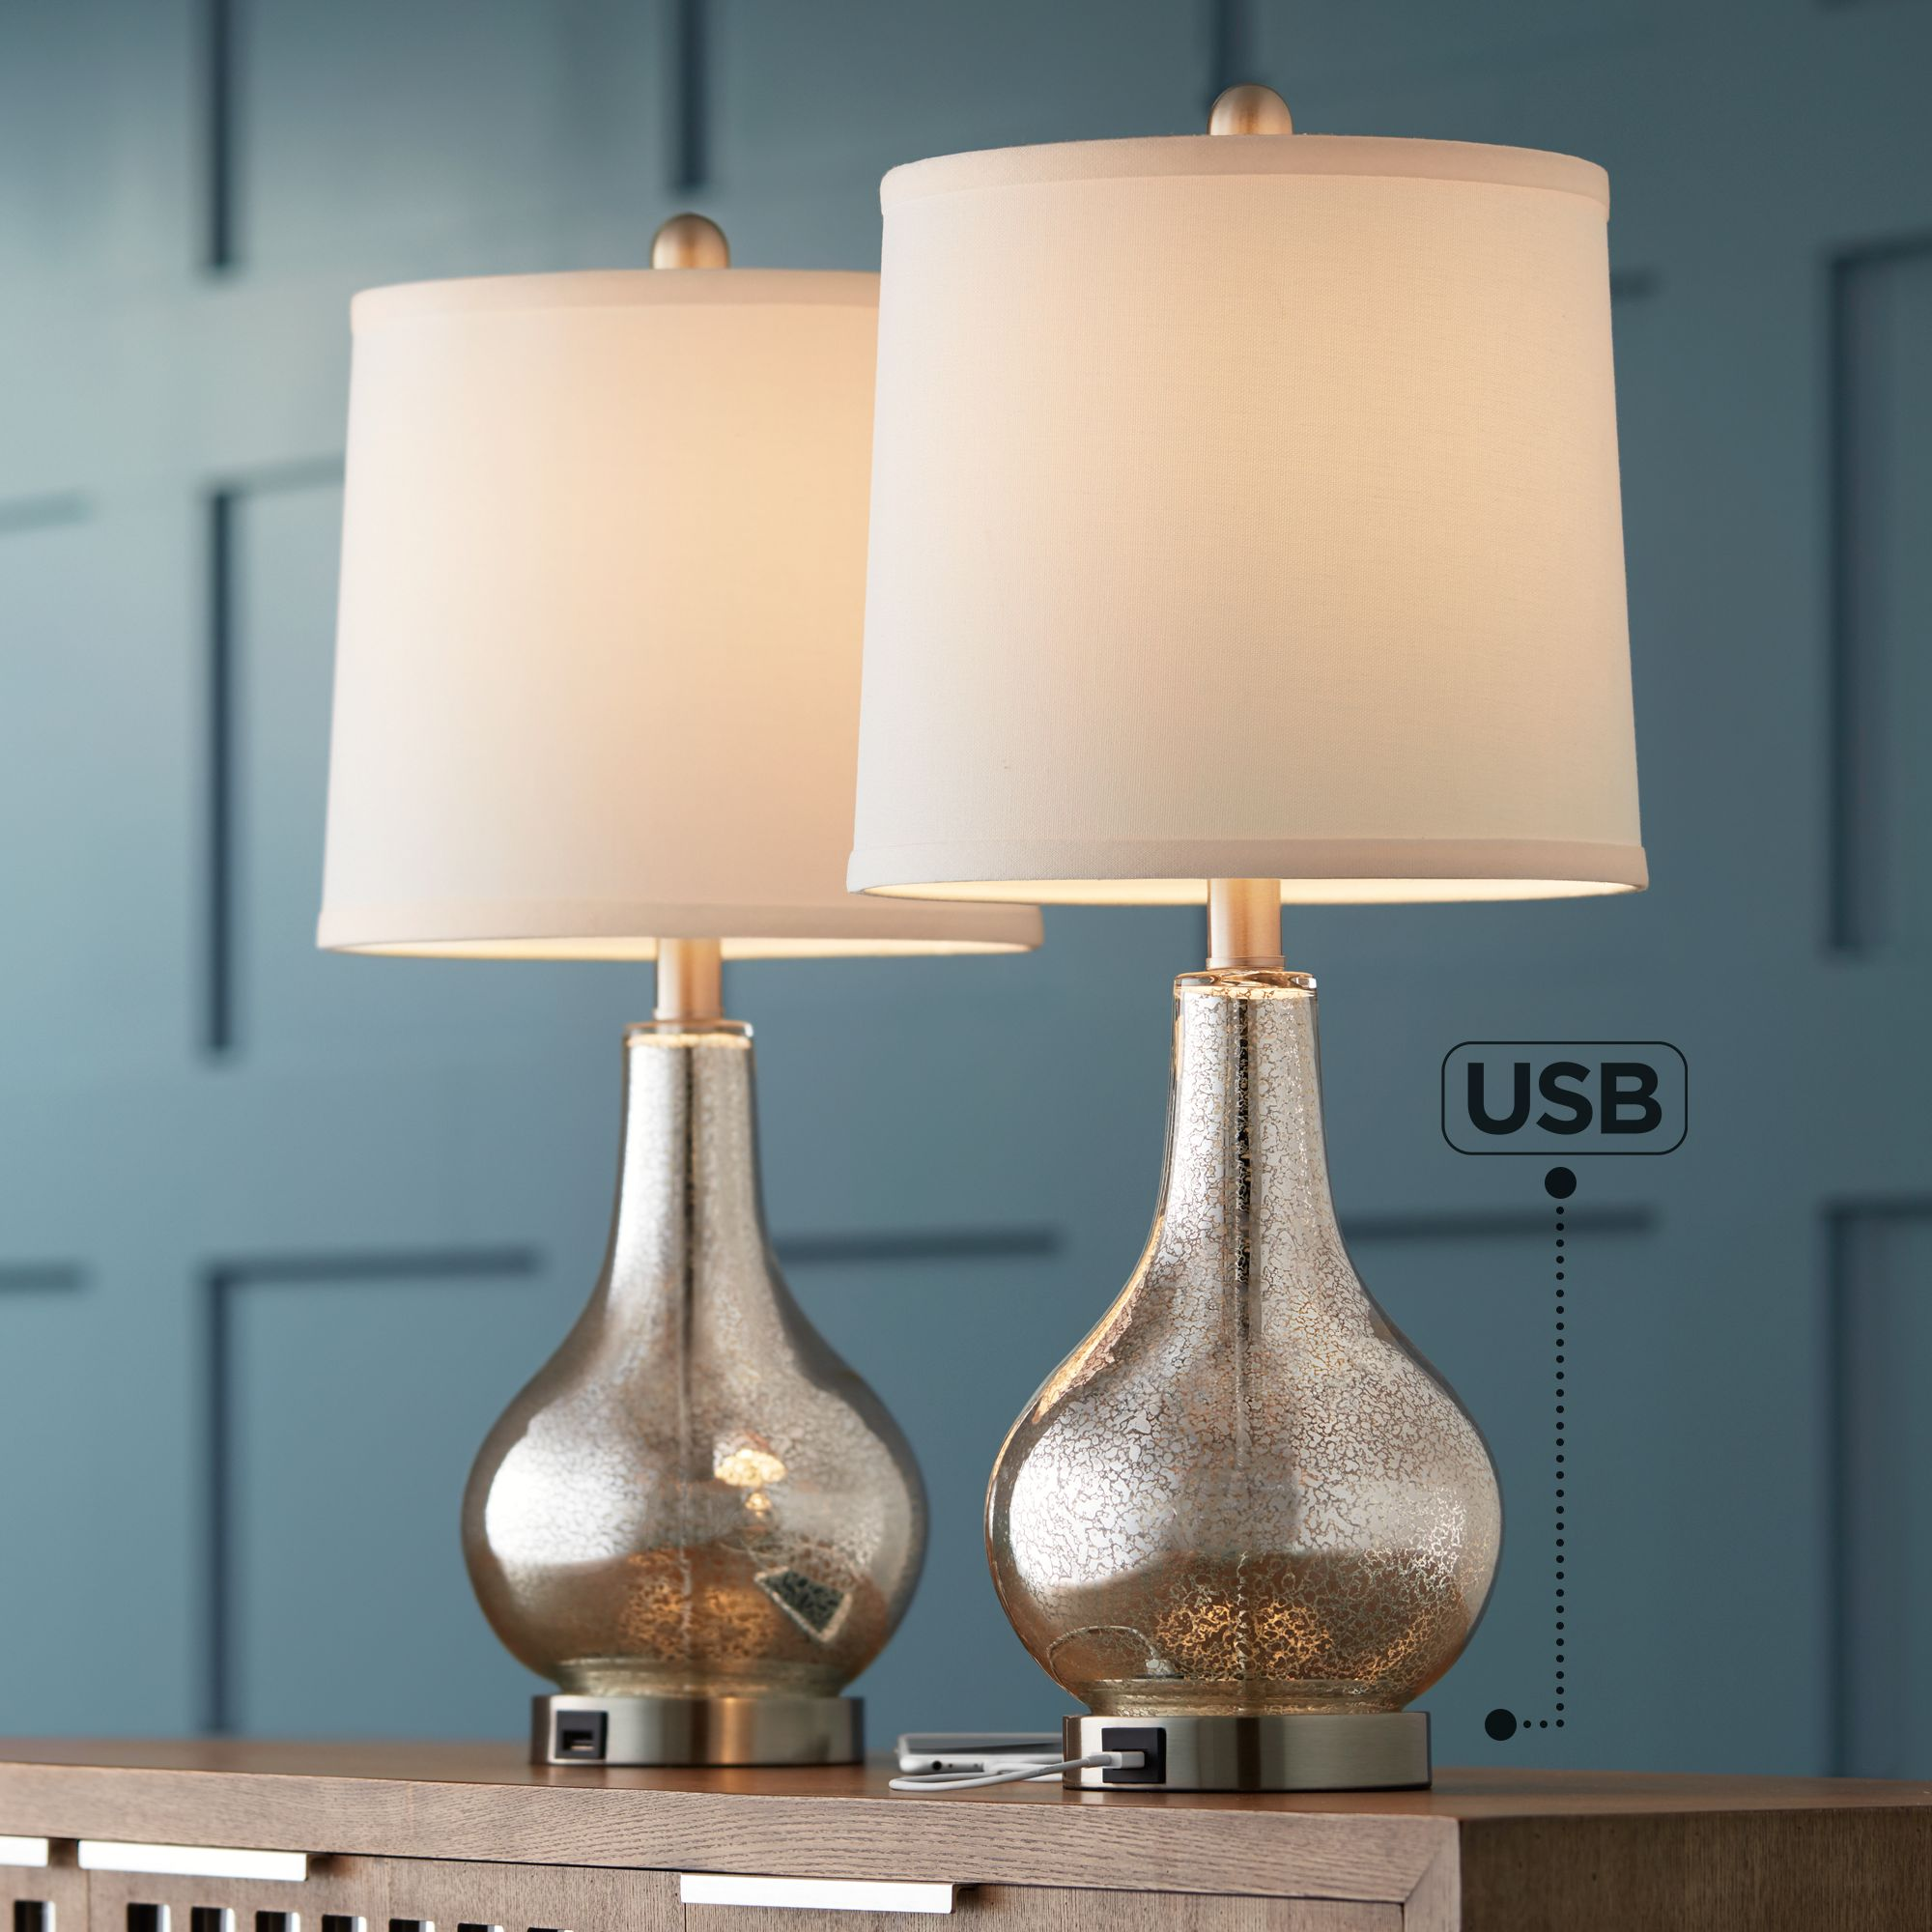 Delicieux Ledger Mercury Glass Accent USB Table Lamp Set Of 2